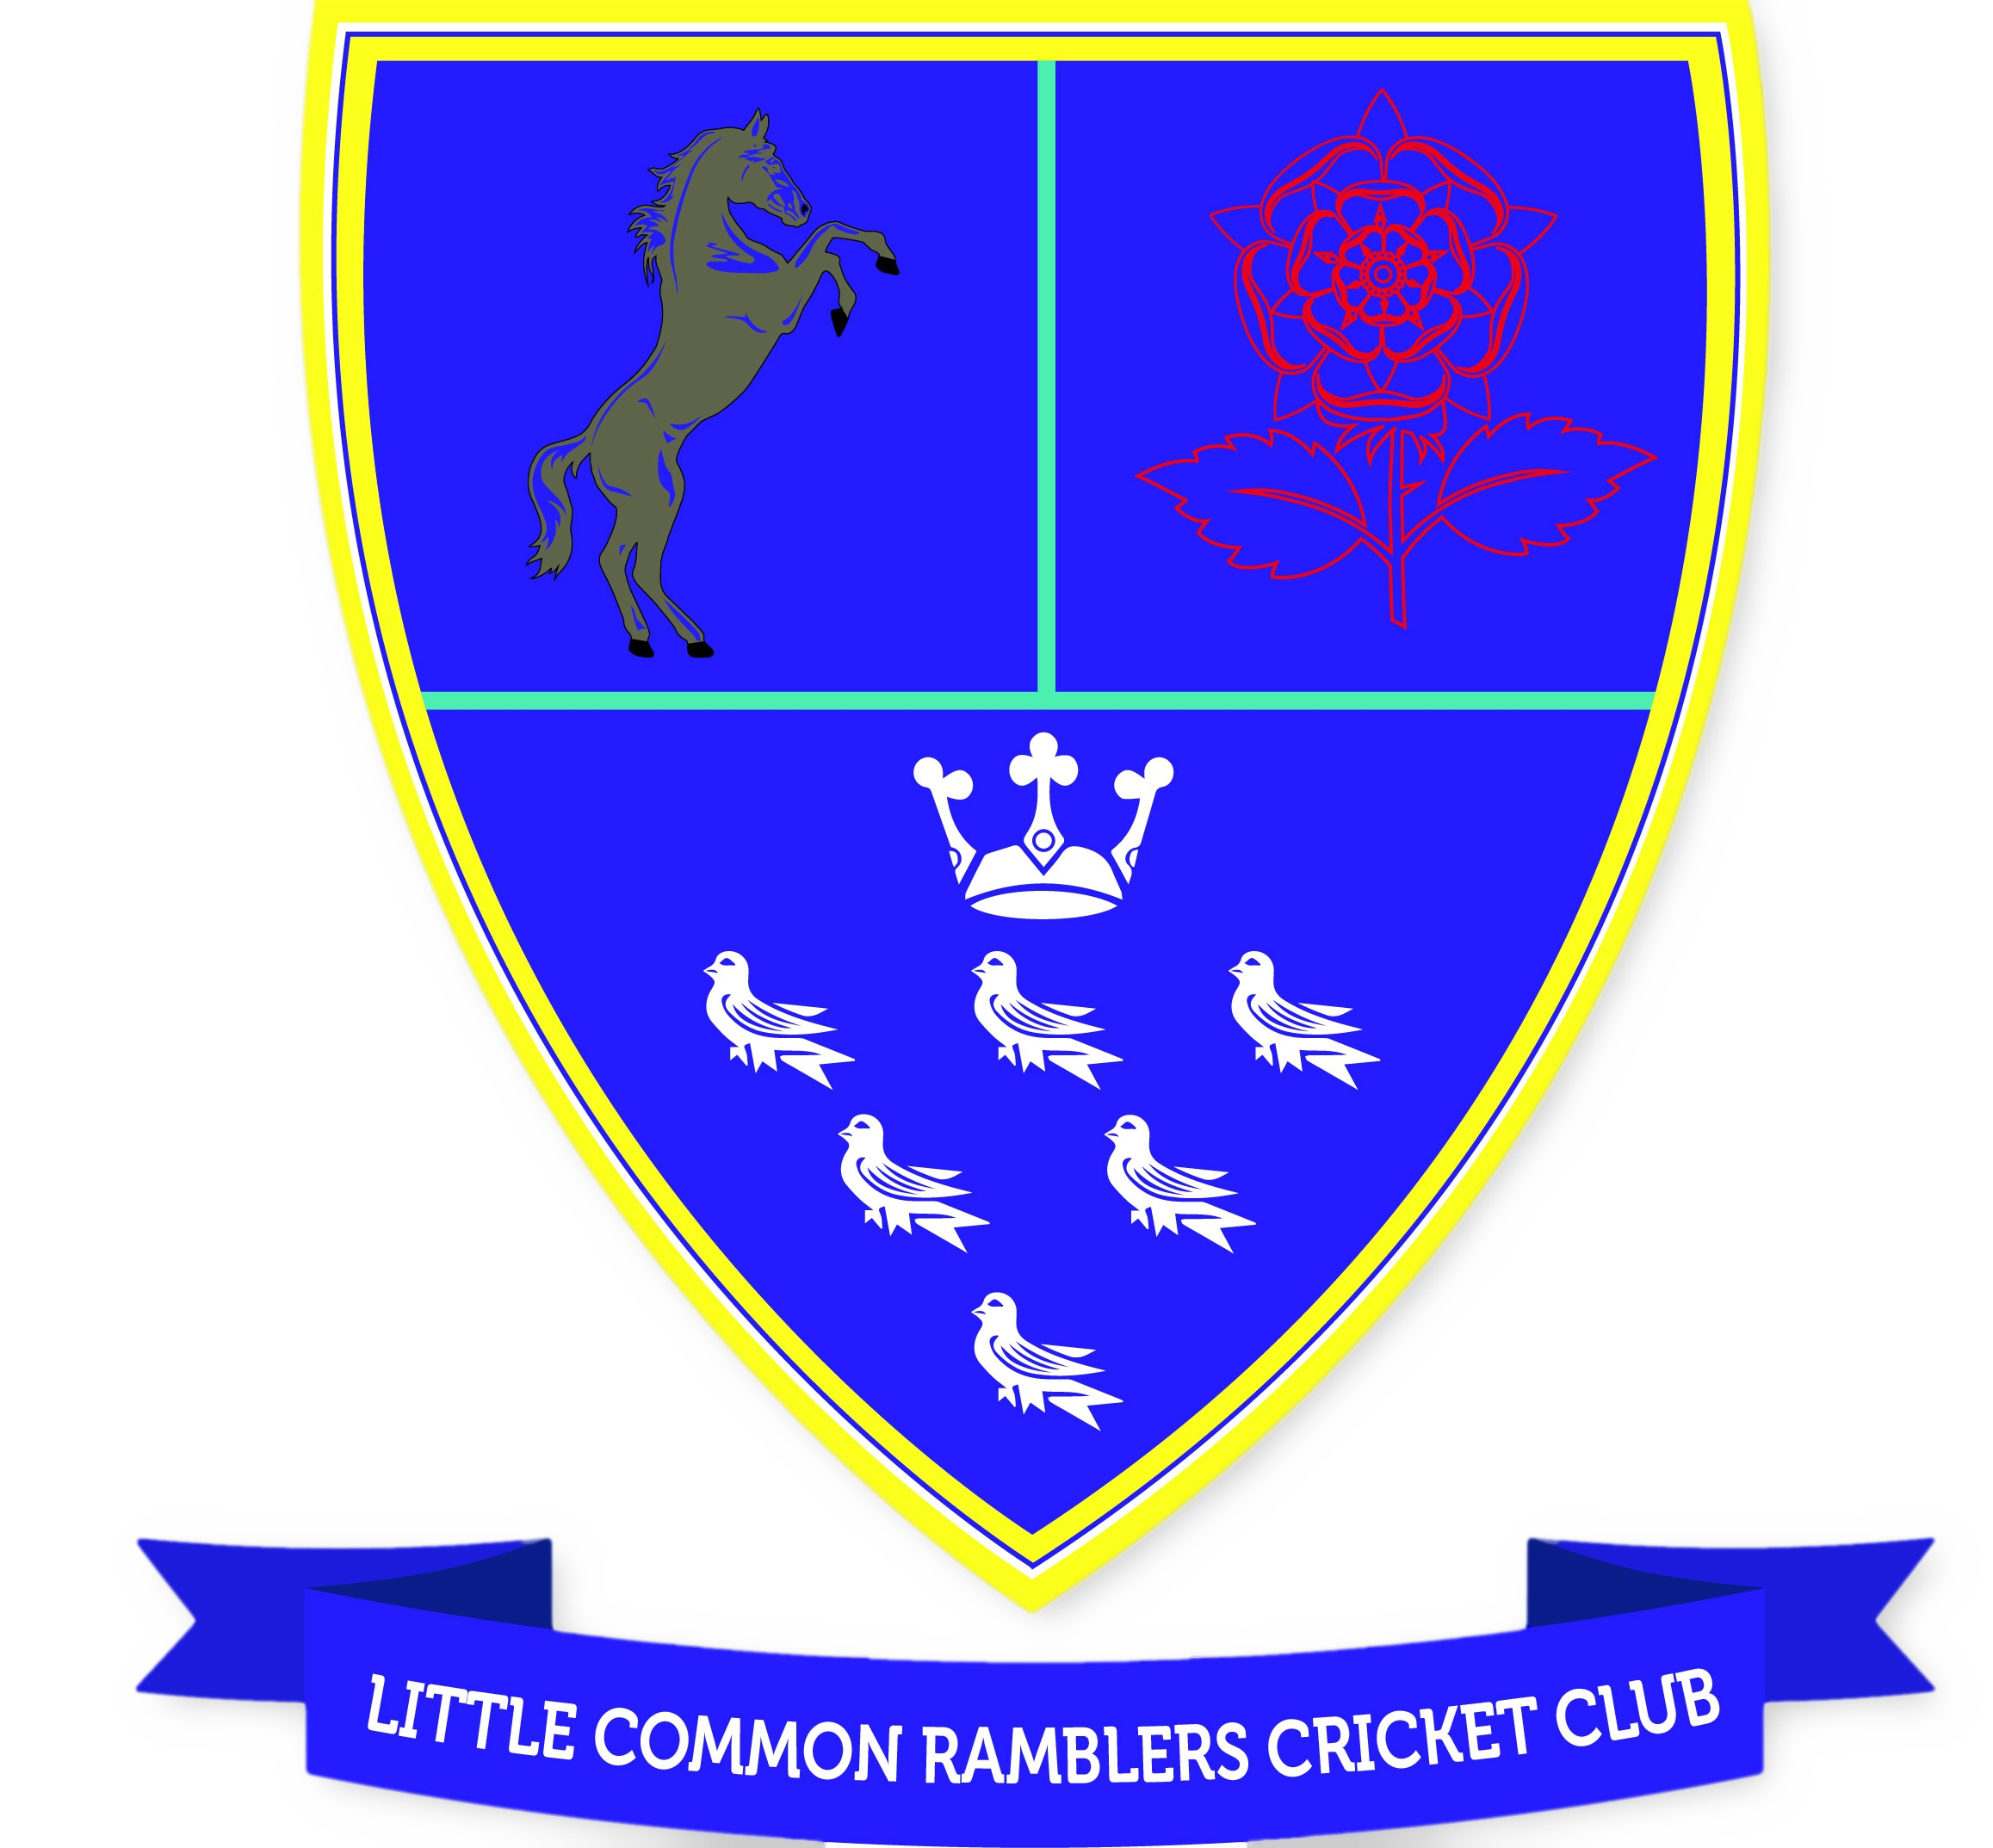 Little Common Ramblers Cricket Club